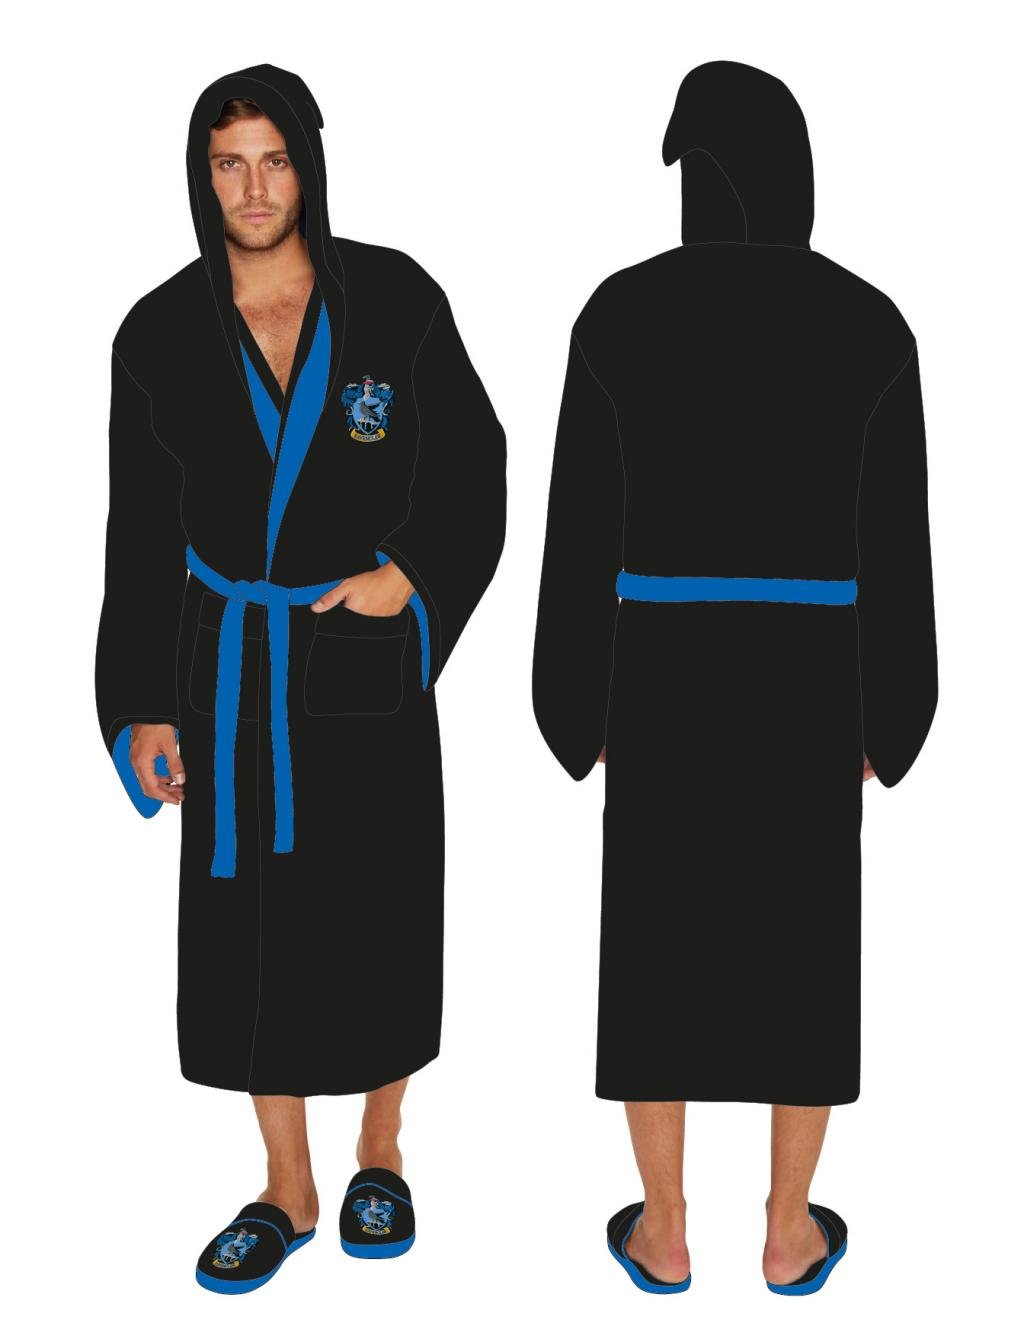 HARRY POTTER - Peignoir Homme - Ravenclaw - Adulte - Taille Unique